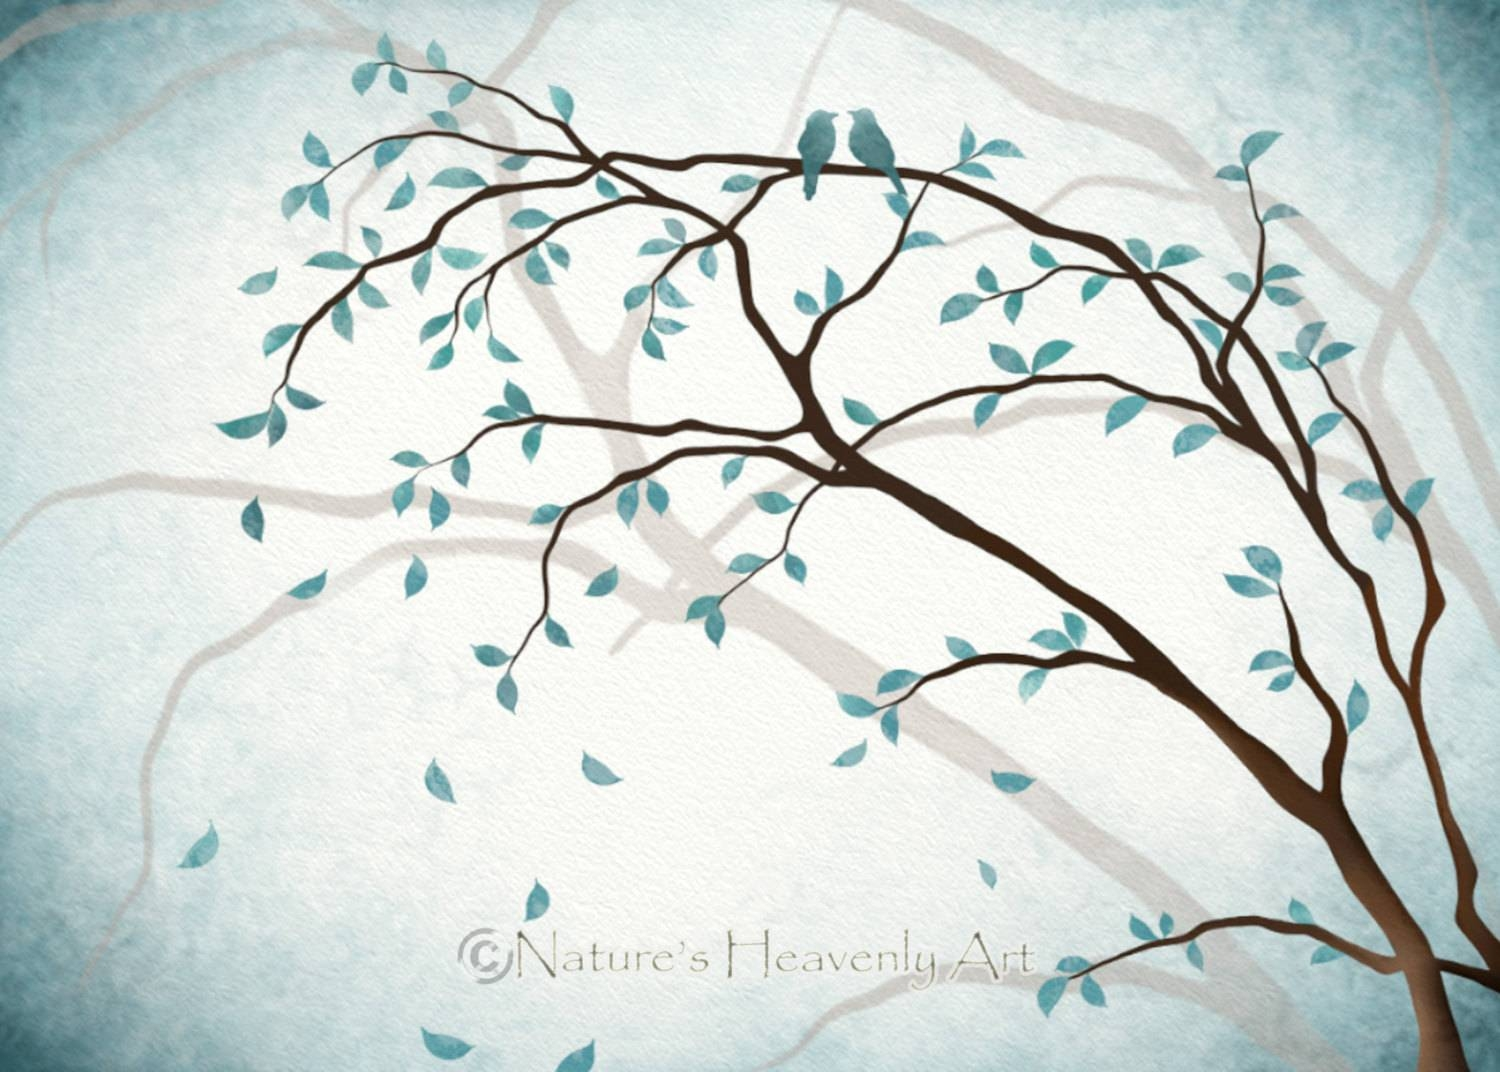 Romantic Love Bird Wall Art 5 X 7 Print Nature Inspired Blue Regarding Newest Tree Branch Wall Art (Gallery 13 of 20)